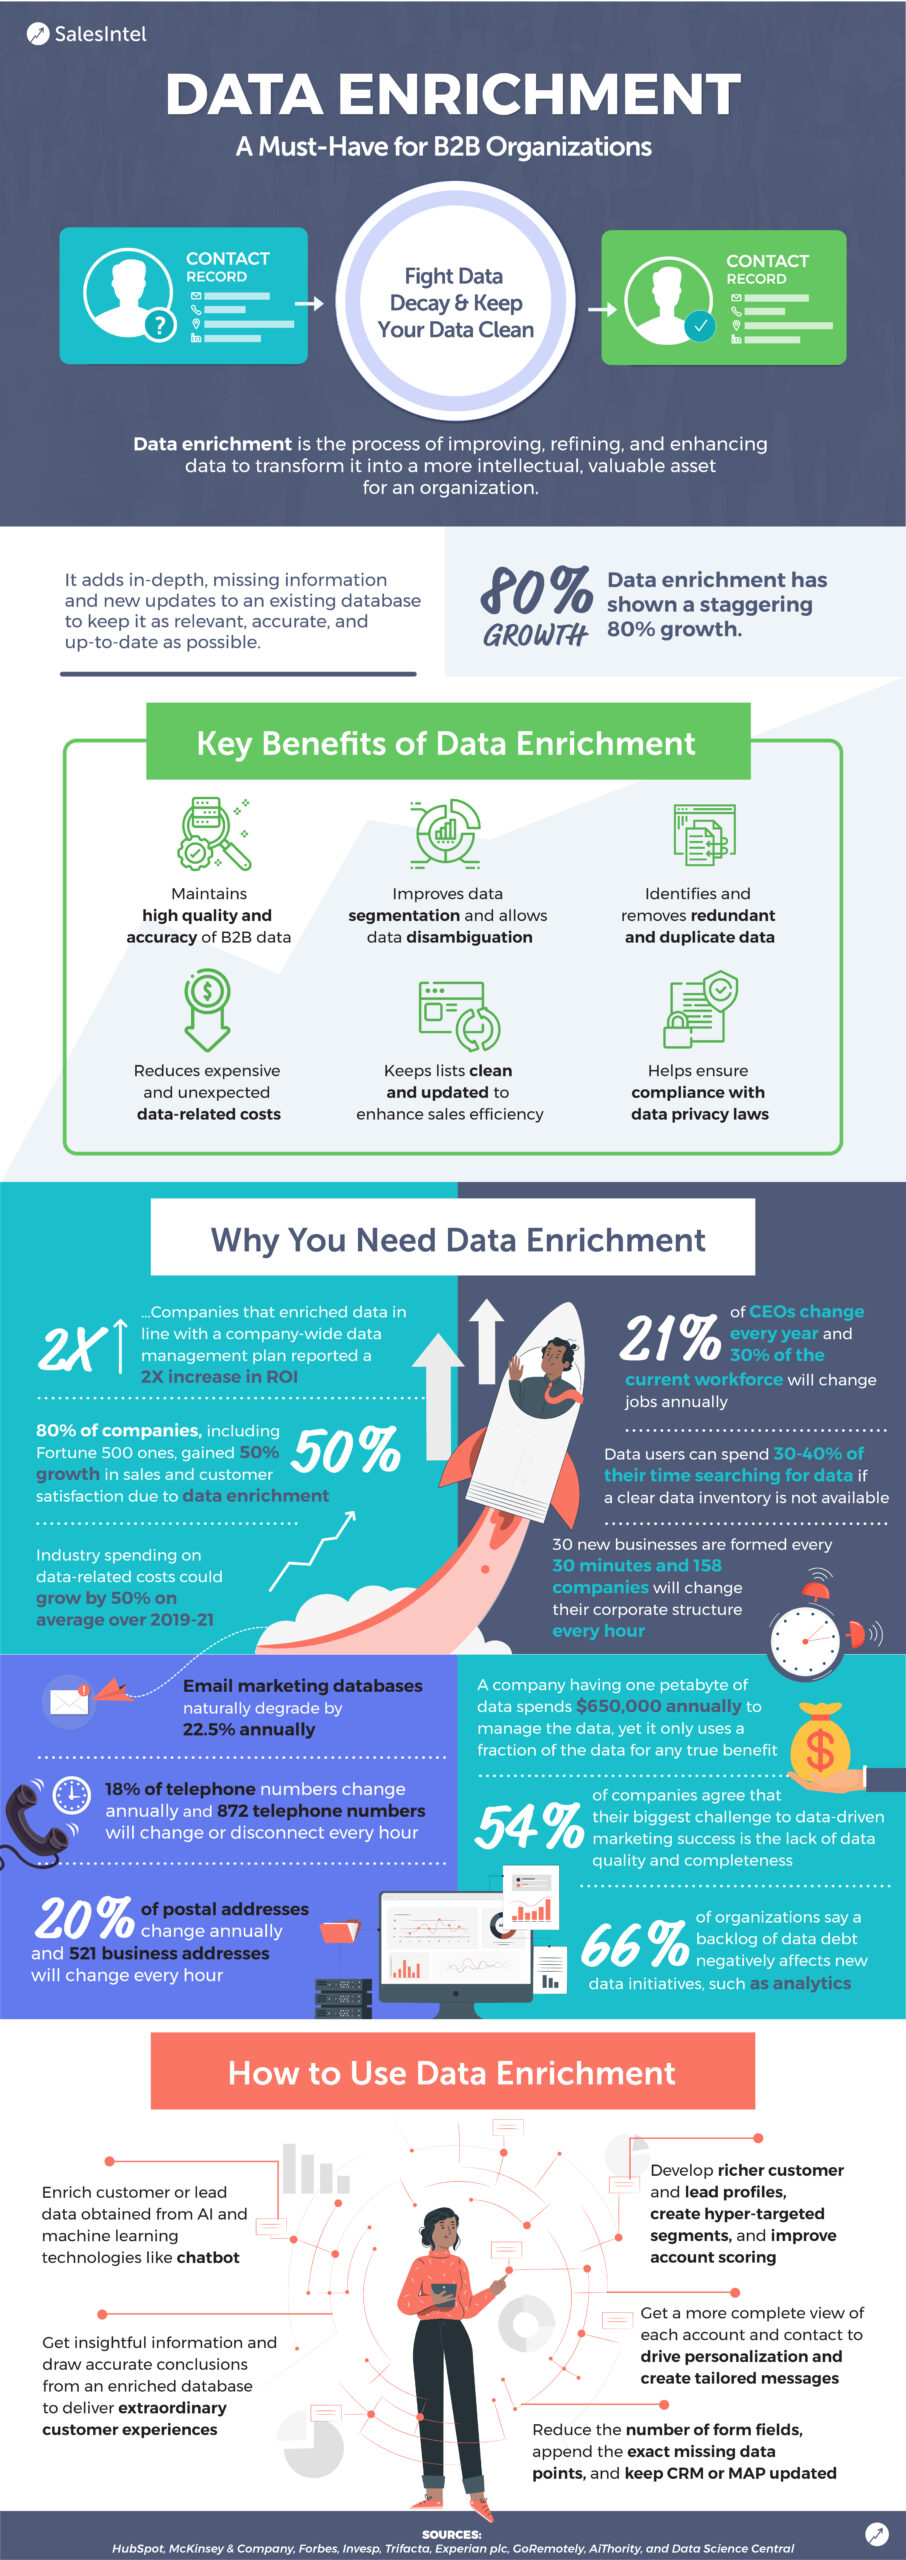 Why Your B2B Company Needs Data Enrichment to Succeed